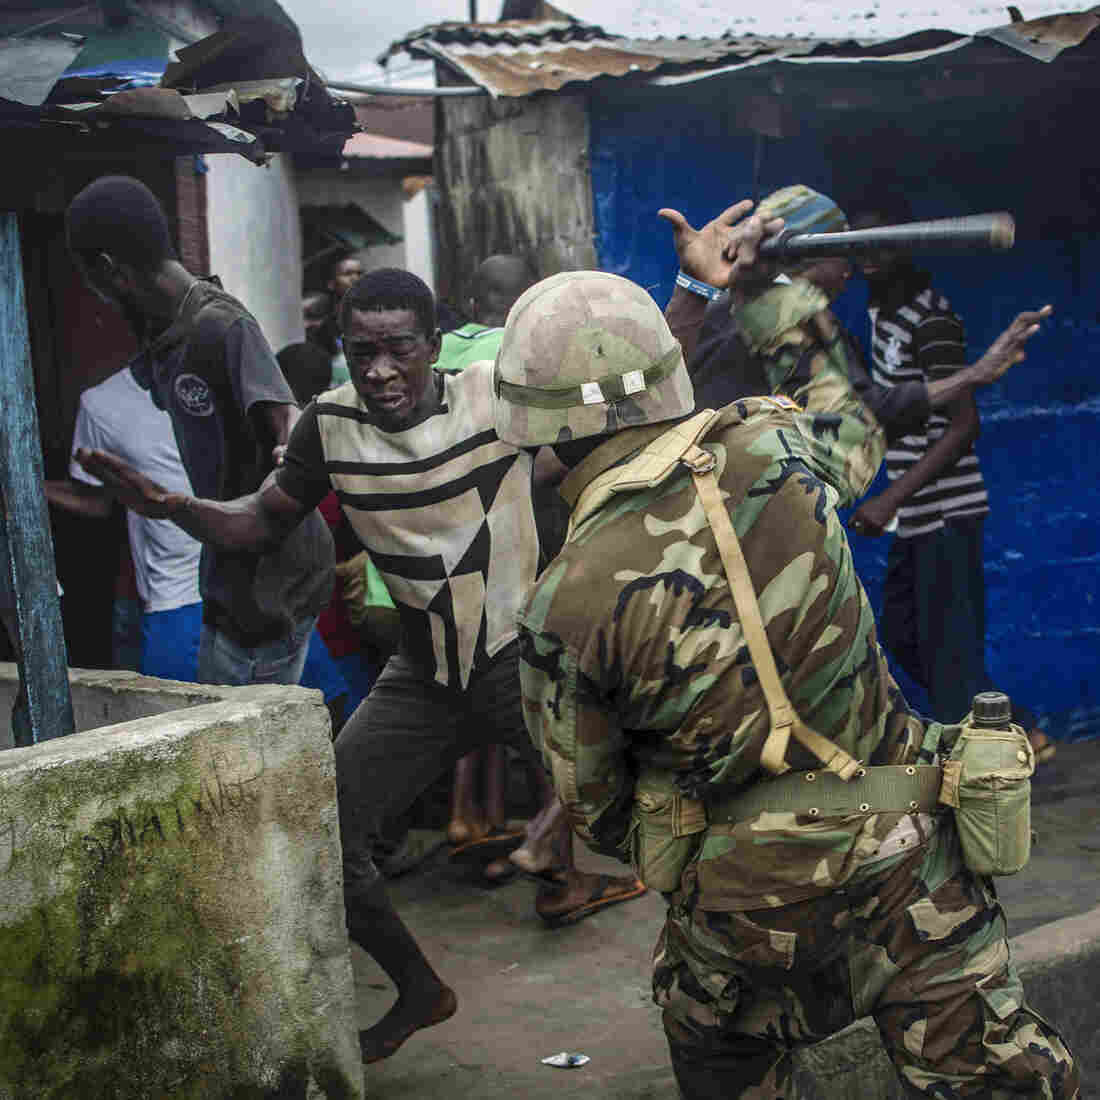 A soldier hits a protestor with a baton during unrest in West Point after the area was quarantined in a bid to prevent the spread of Ebola.